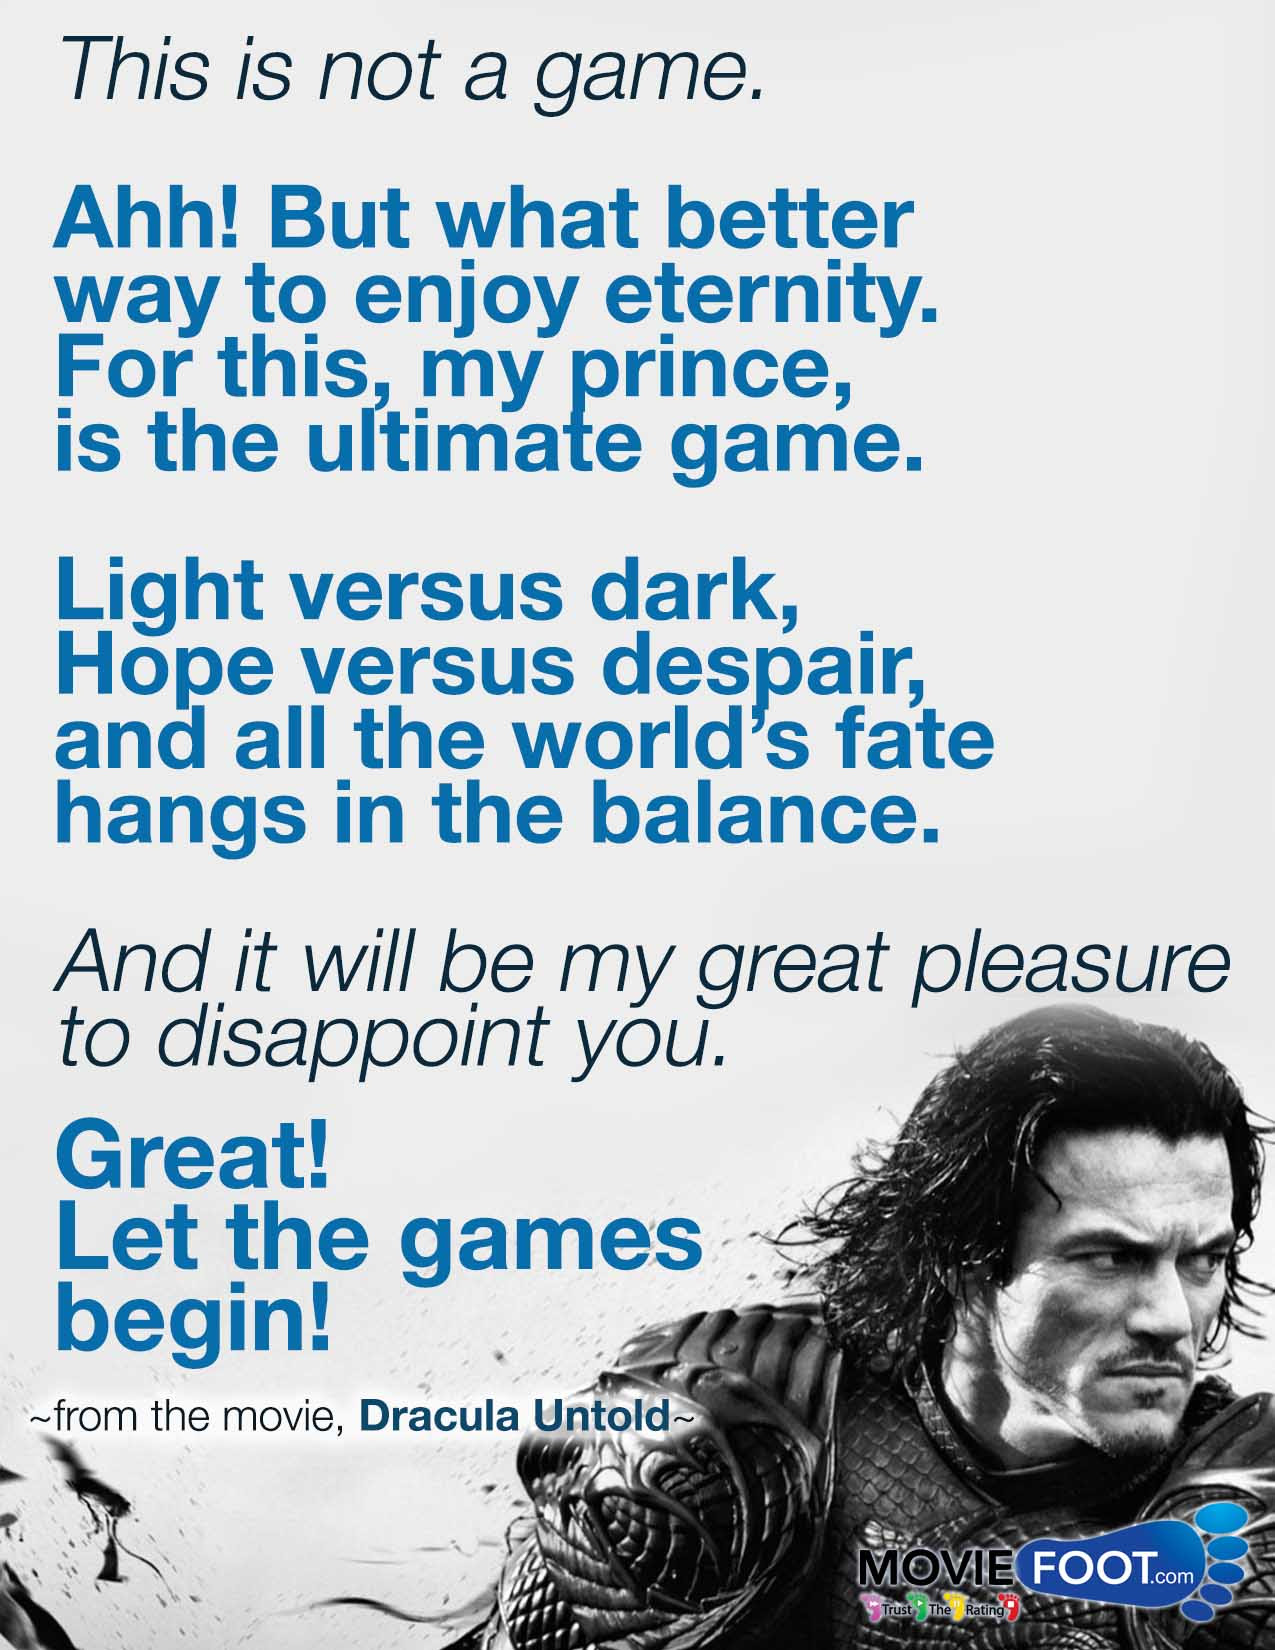 Dracula Untold Movie Review Moviefoot